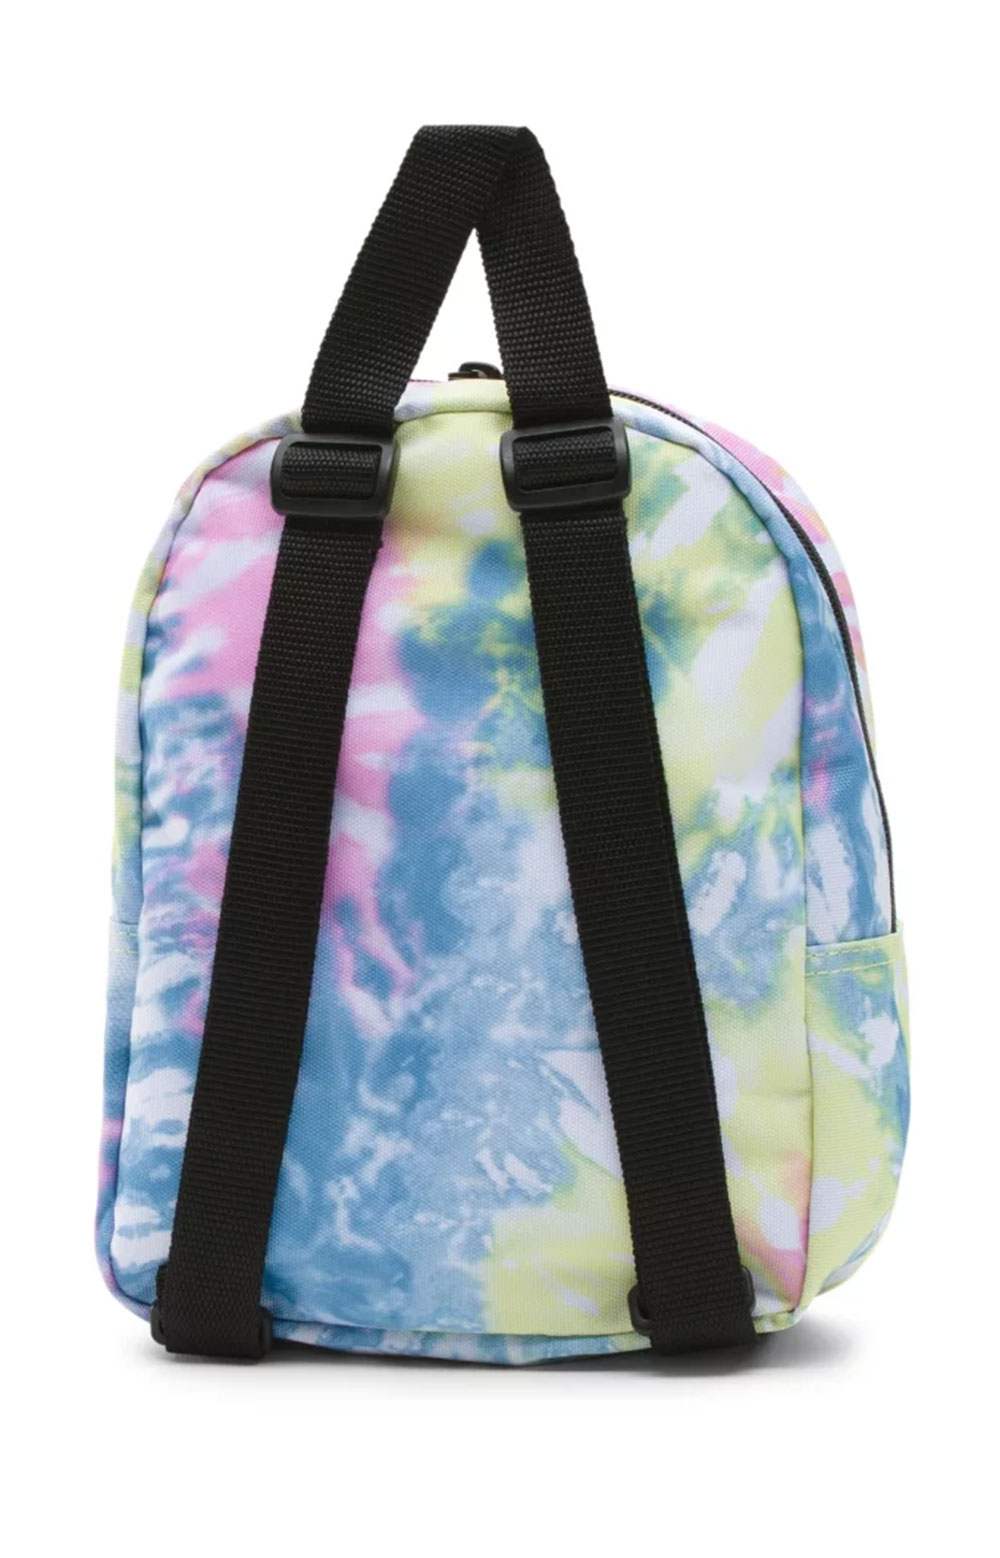 Got This Mini Backpack - Tie-Dye Orchid  2